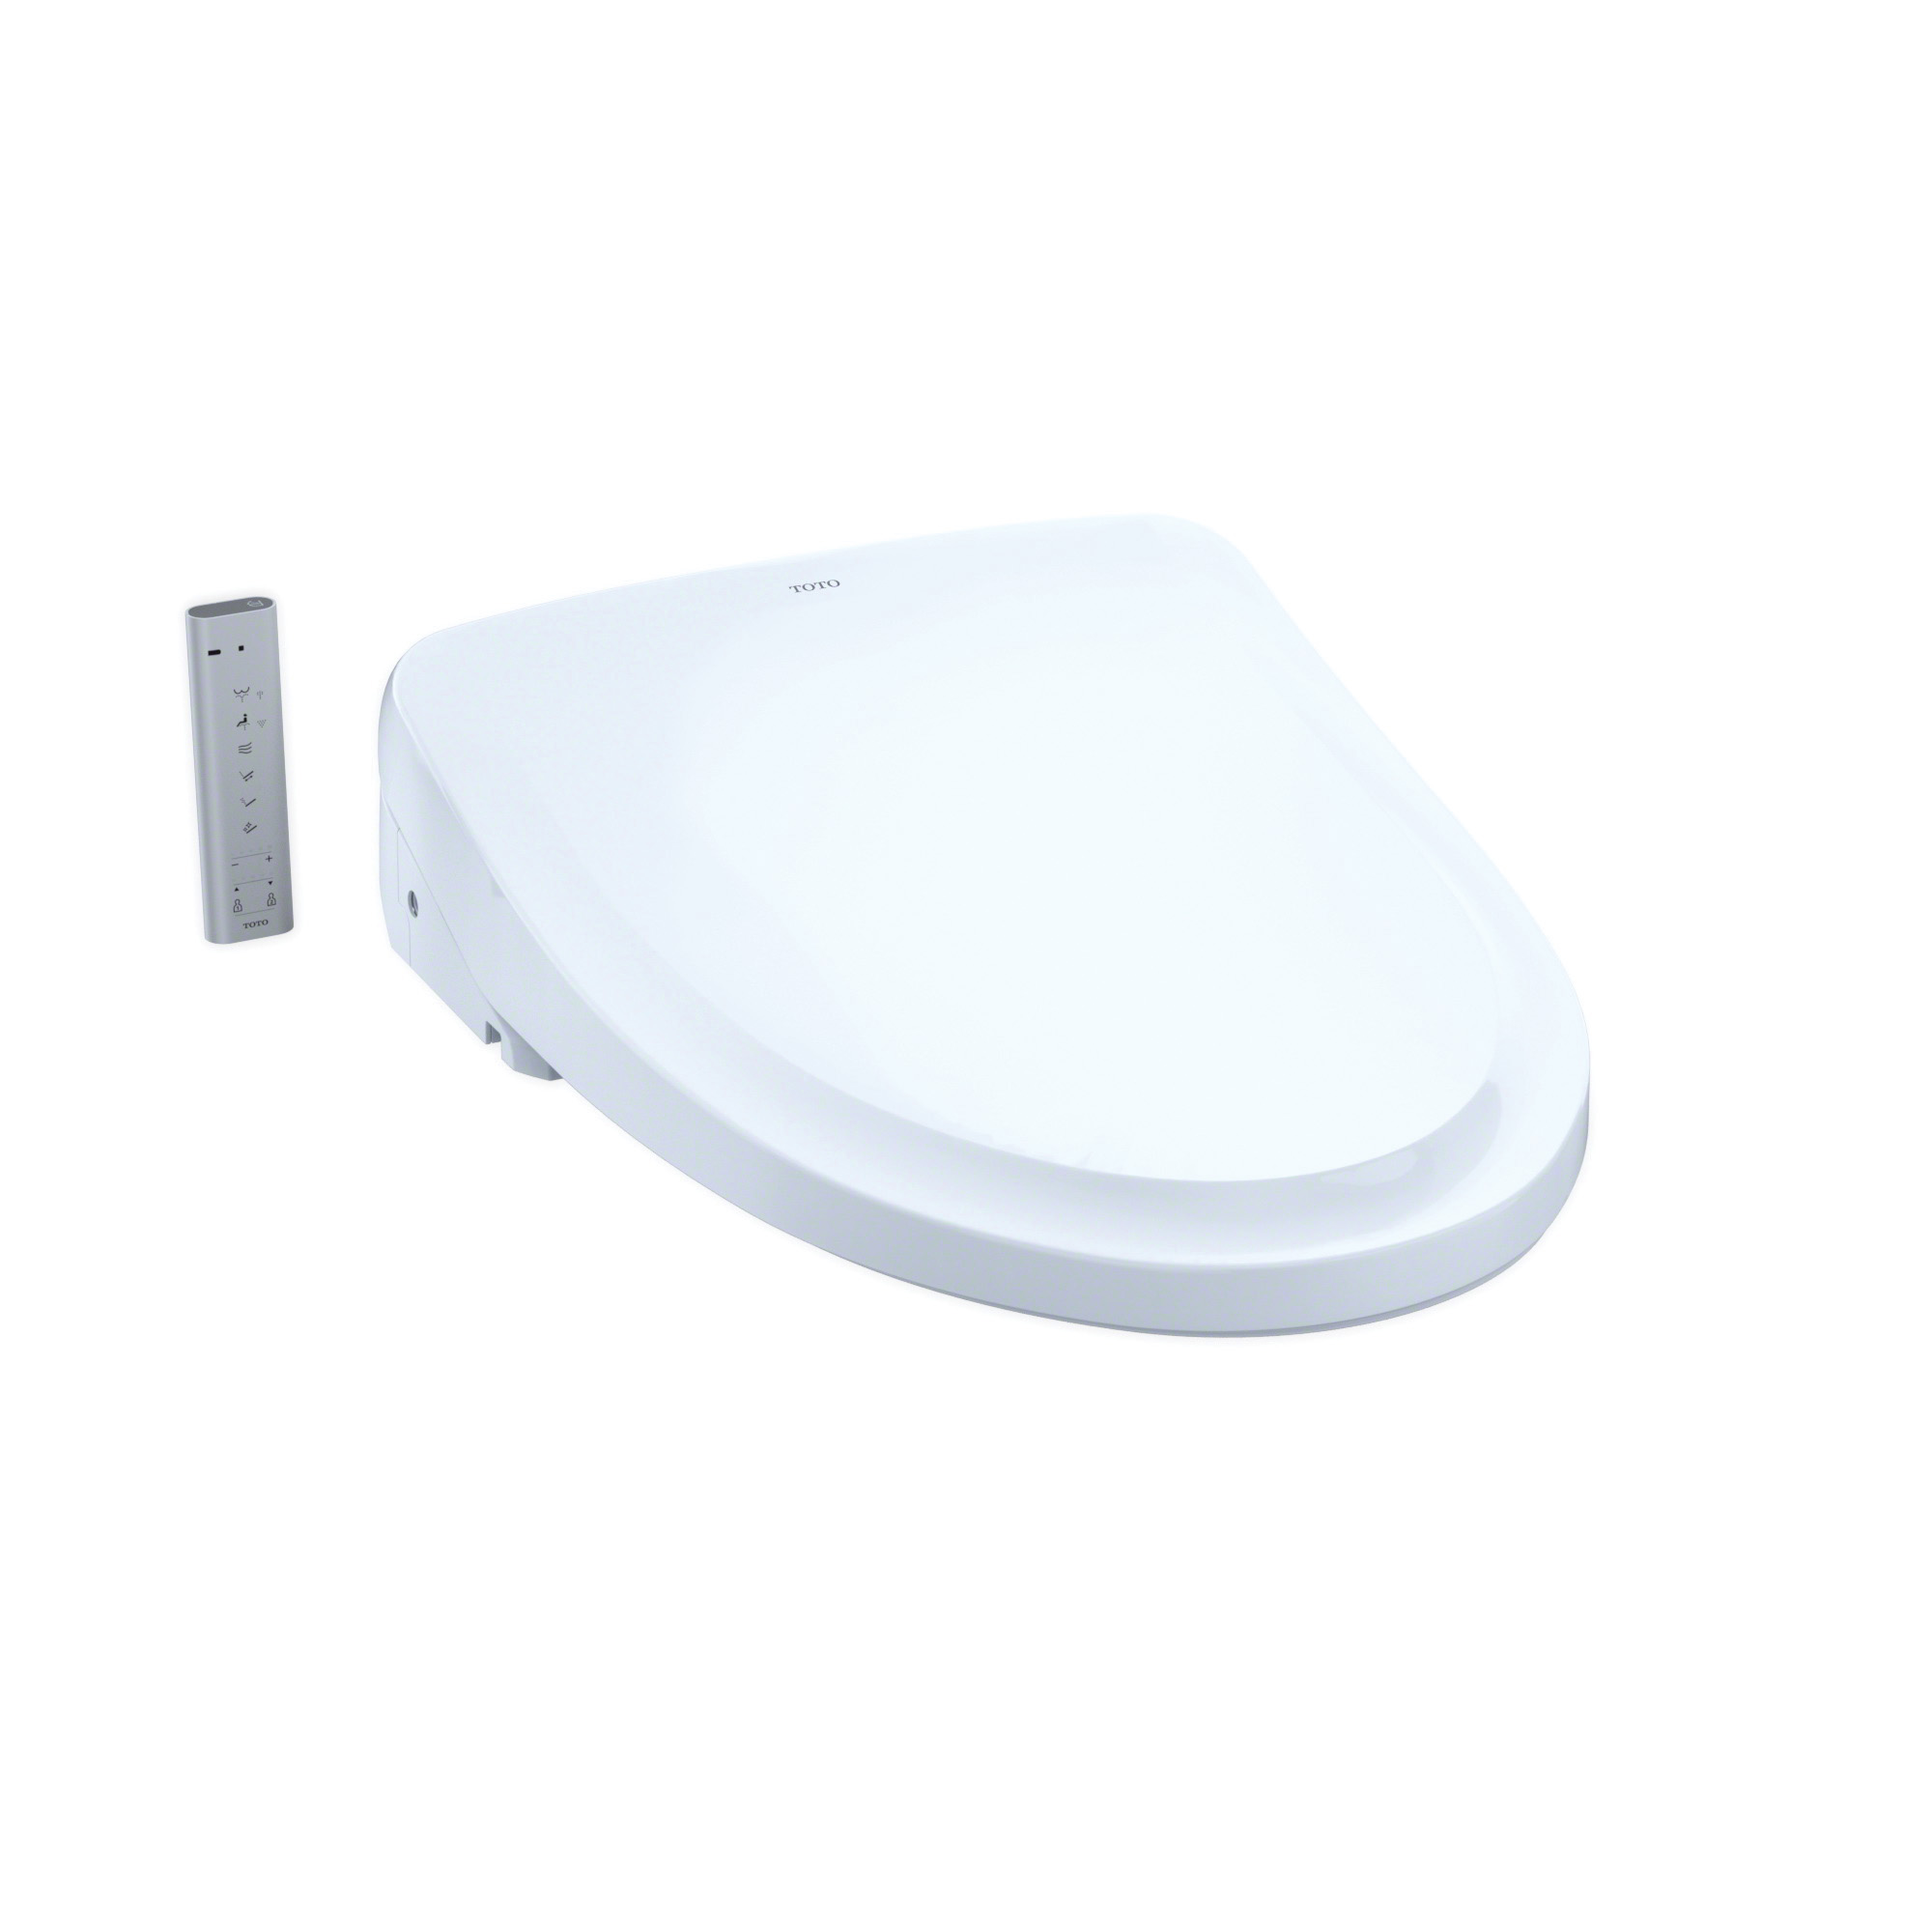 Toto® SW3054#01 Electronic Bidet Toilet Seat With ewater+® Technology, WASHLET® S550e, Elongated Front Bowl, Auto Open/Closed Front, Plastic, Cotton White, Import